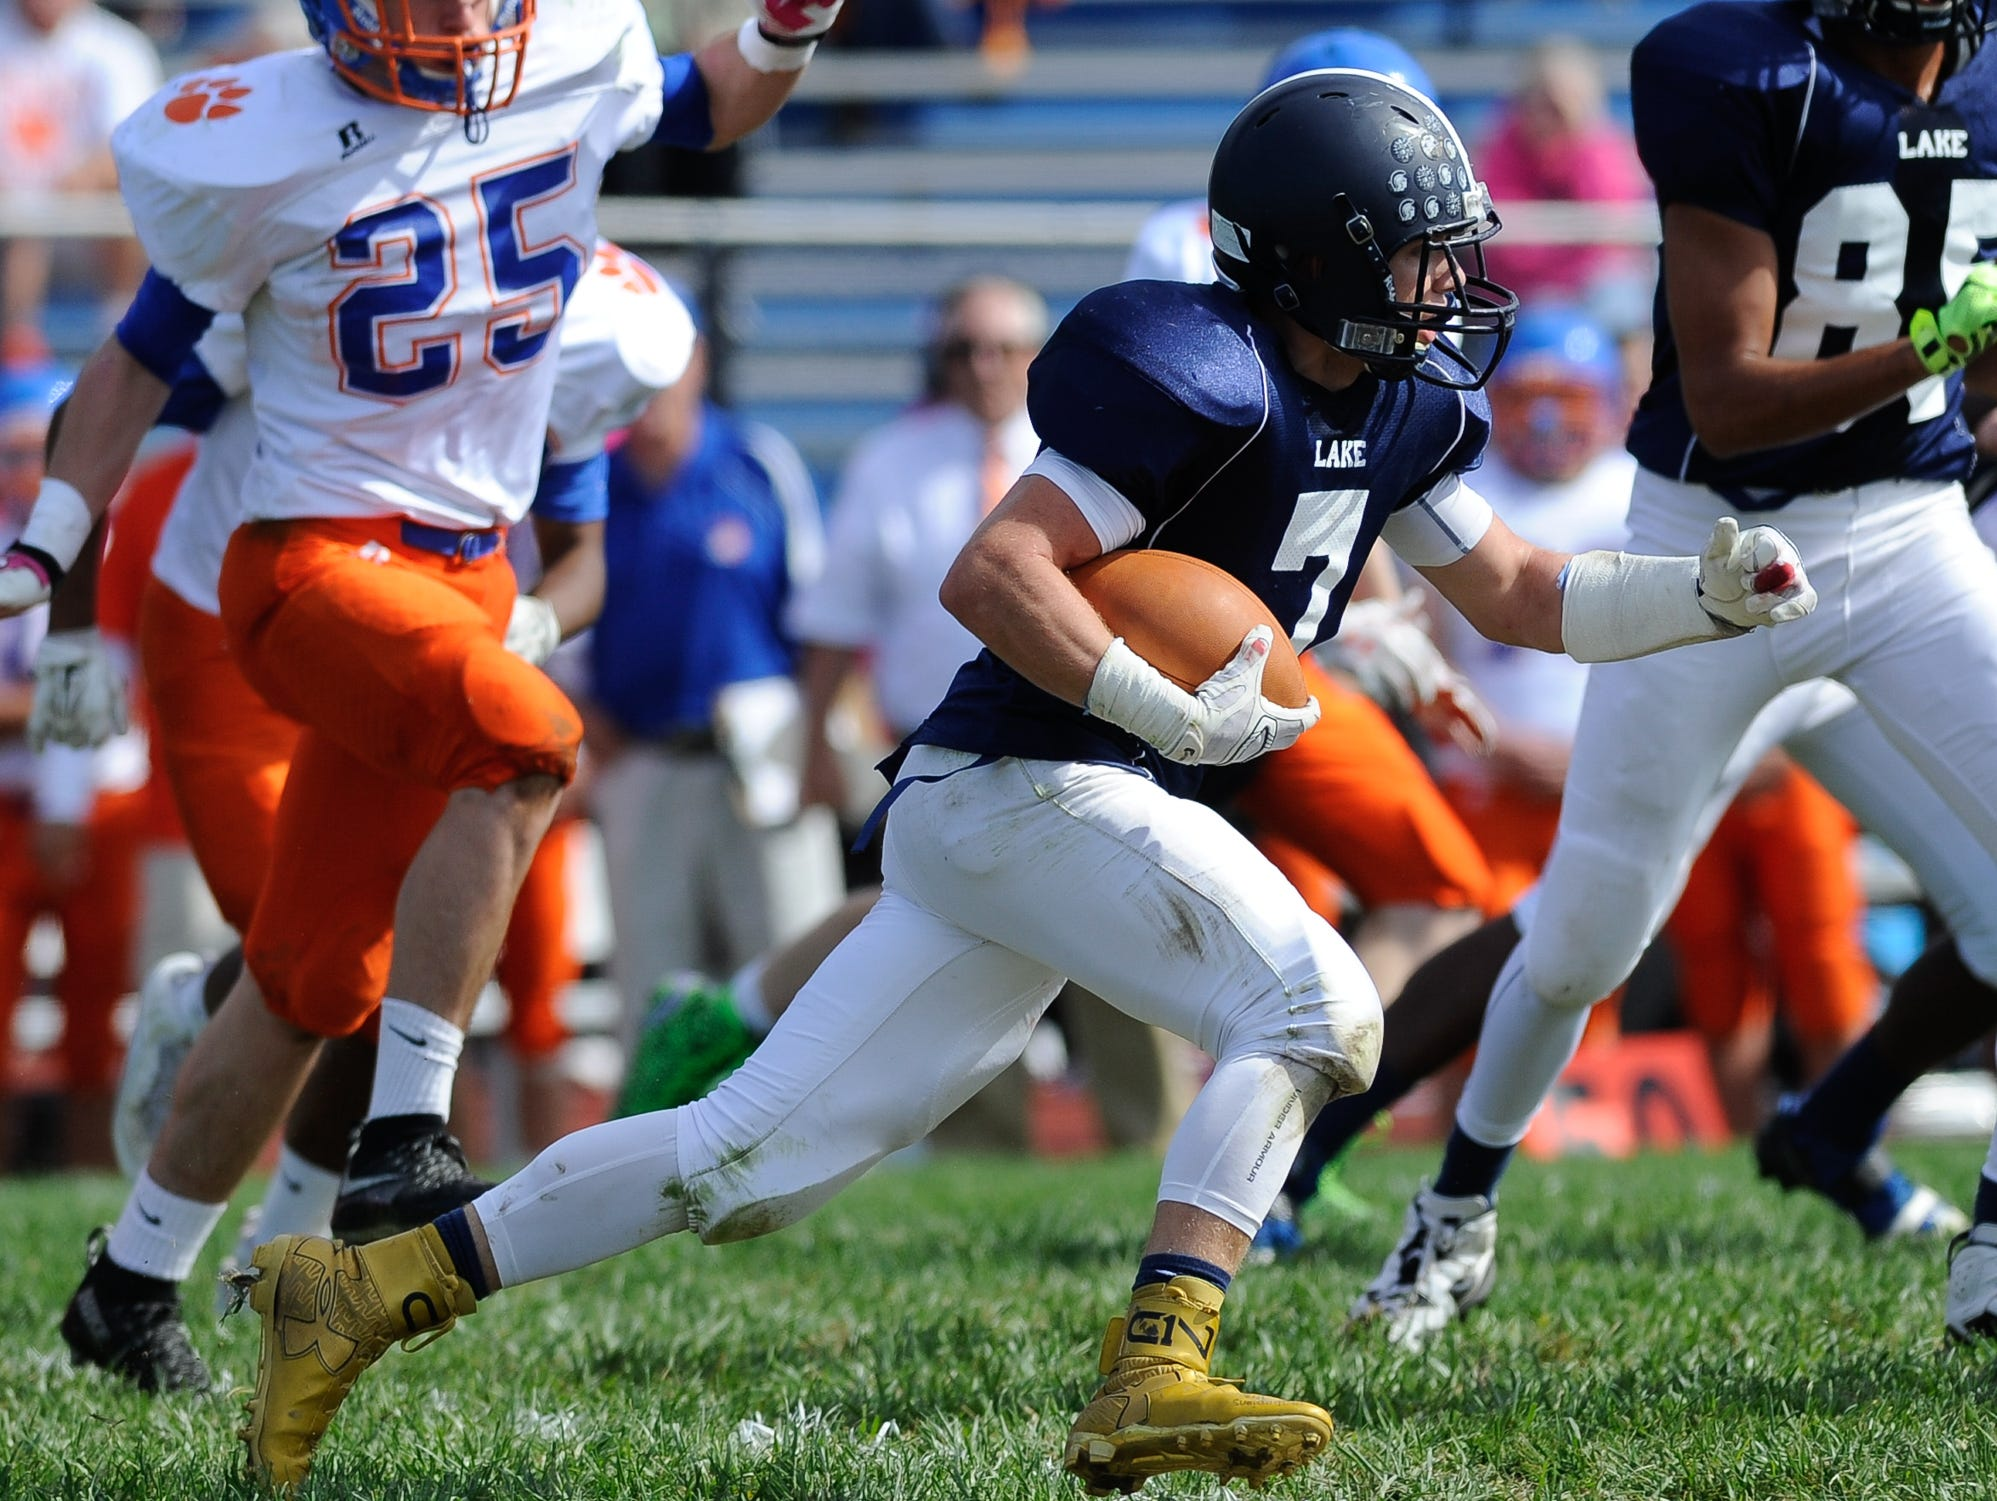 Lake Forest's #7 Ben Moore runs the ball in their 19-14 win over Delmar on Saturday at Lake Forest High School.